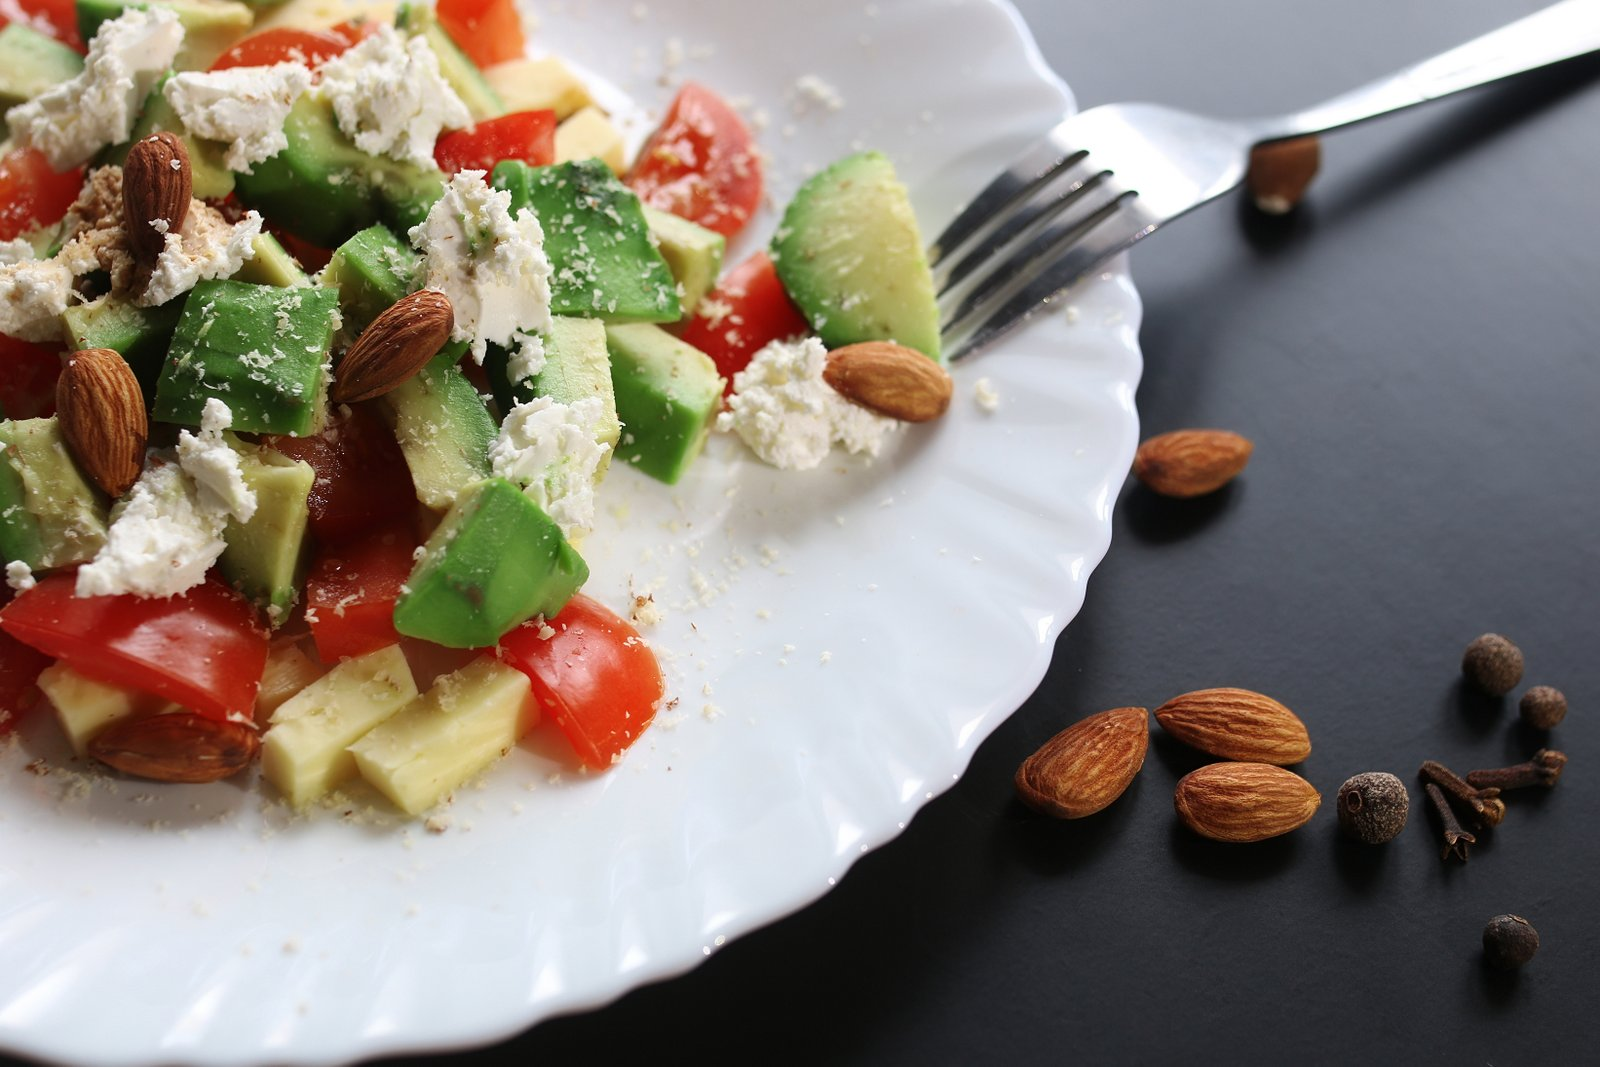 Avocado And Almond Salad Recipe With Feta Cheese